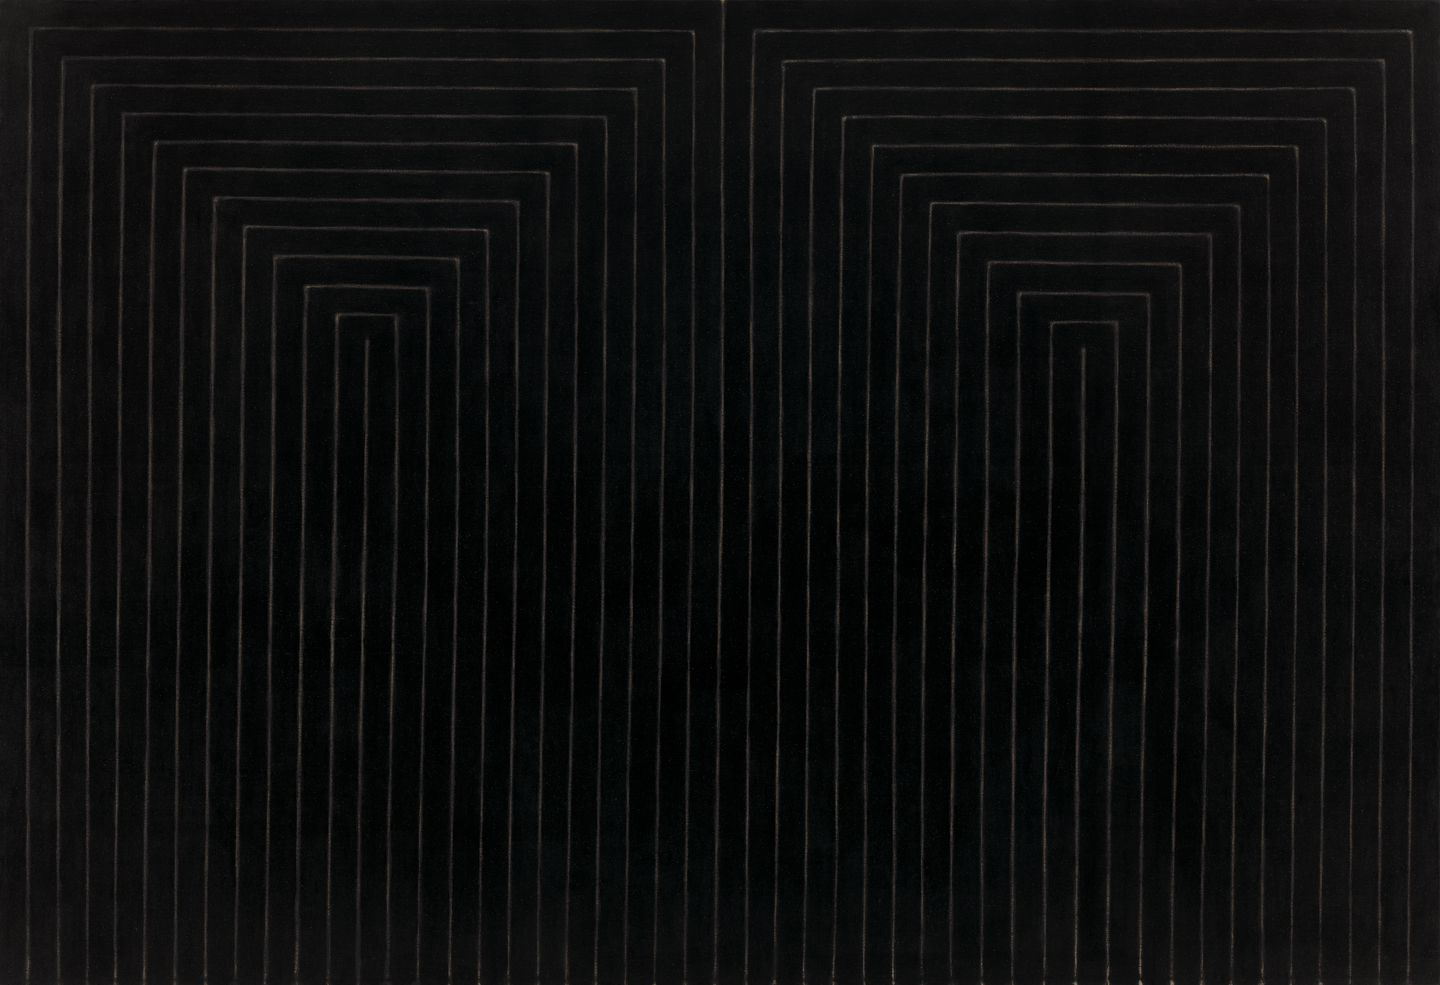 Frank Stella: The Marriage of Reason and Squalor, II, enamel on canvas, 2.31×3.37 m, 1959 (New York, Museum of Modern Art); © 2007 Frank Stella/Artists Rights Society (ARS), New York, courtesy of The Museum of Modern Art, New York